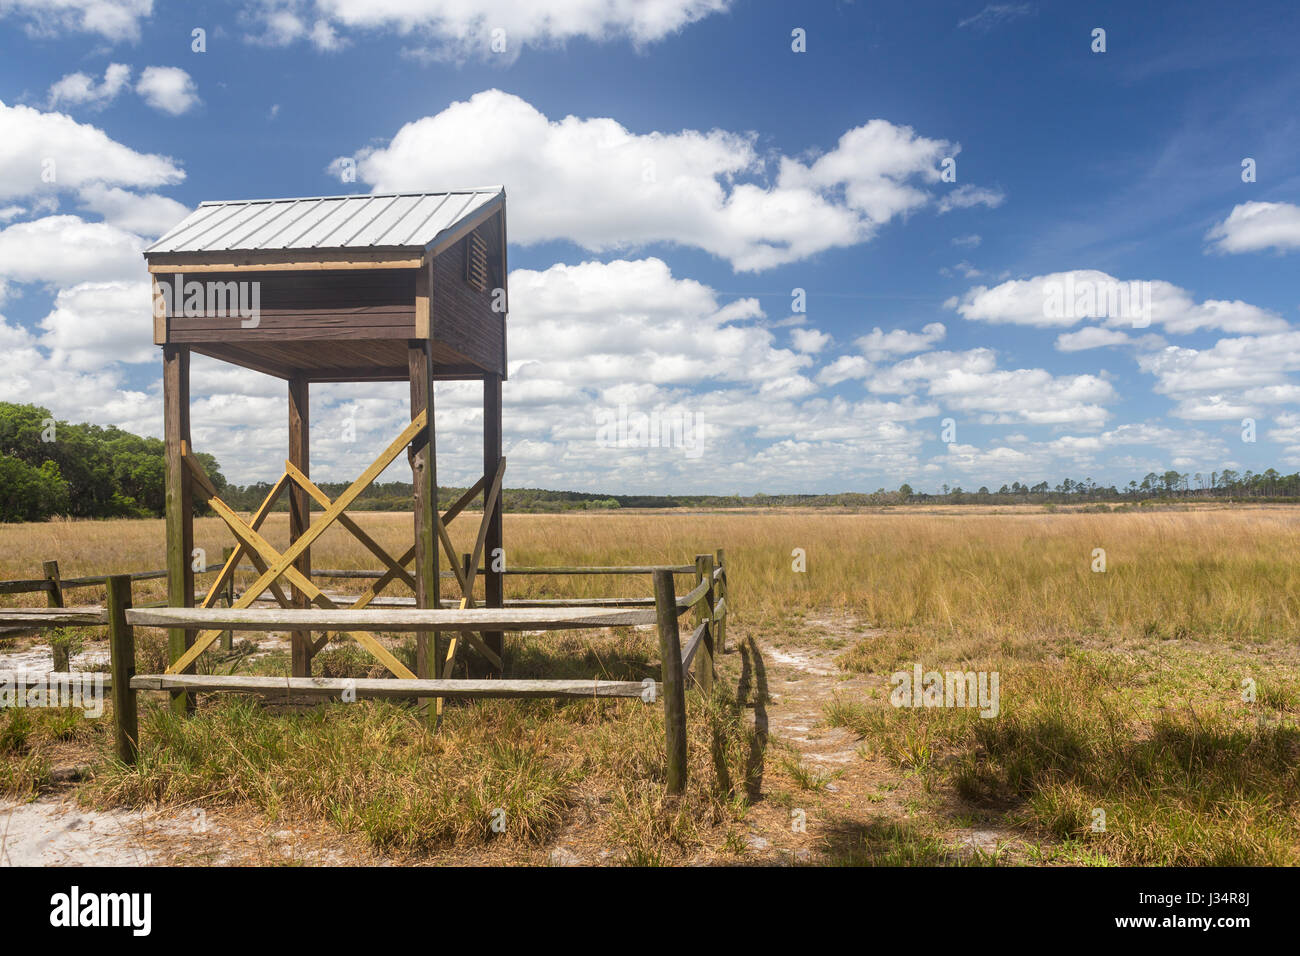 A bat house in Hopkins Prairie in Ocala National Forest in Florida. - Stock Image